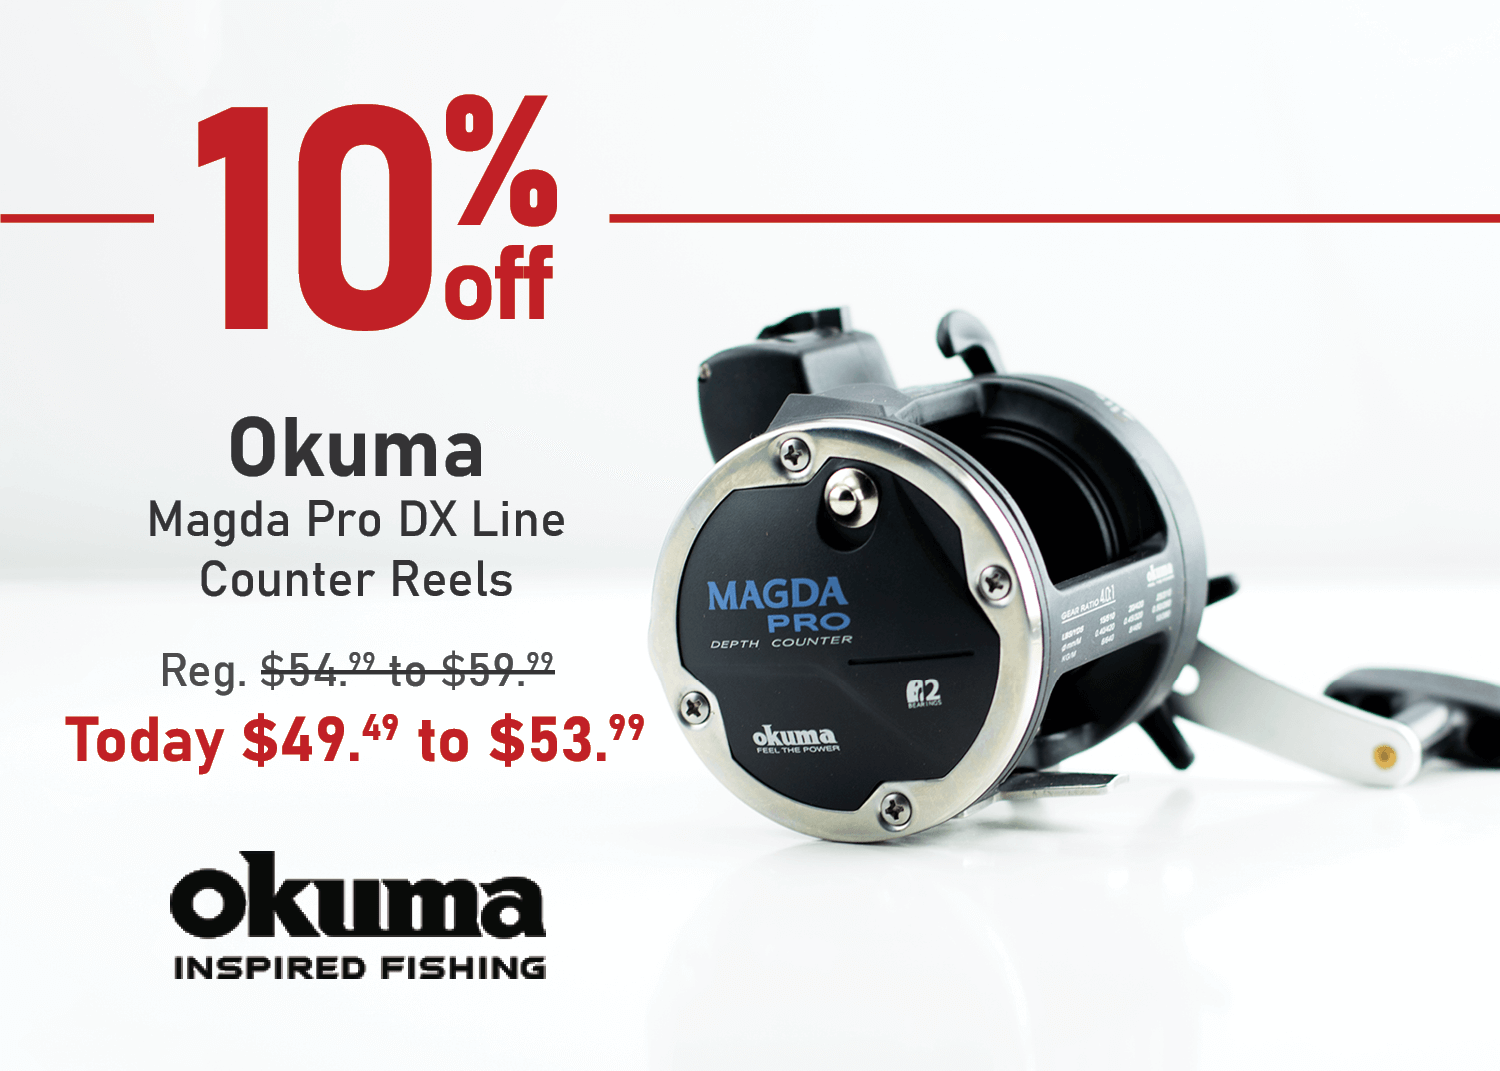 Take 10% off the Okuma Magda Pro DX Line Counter Reel